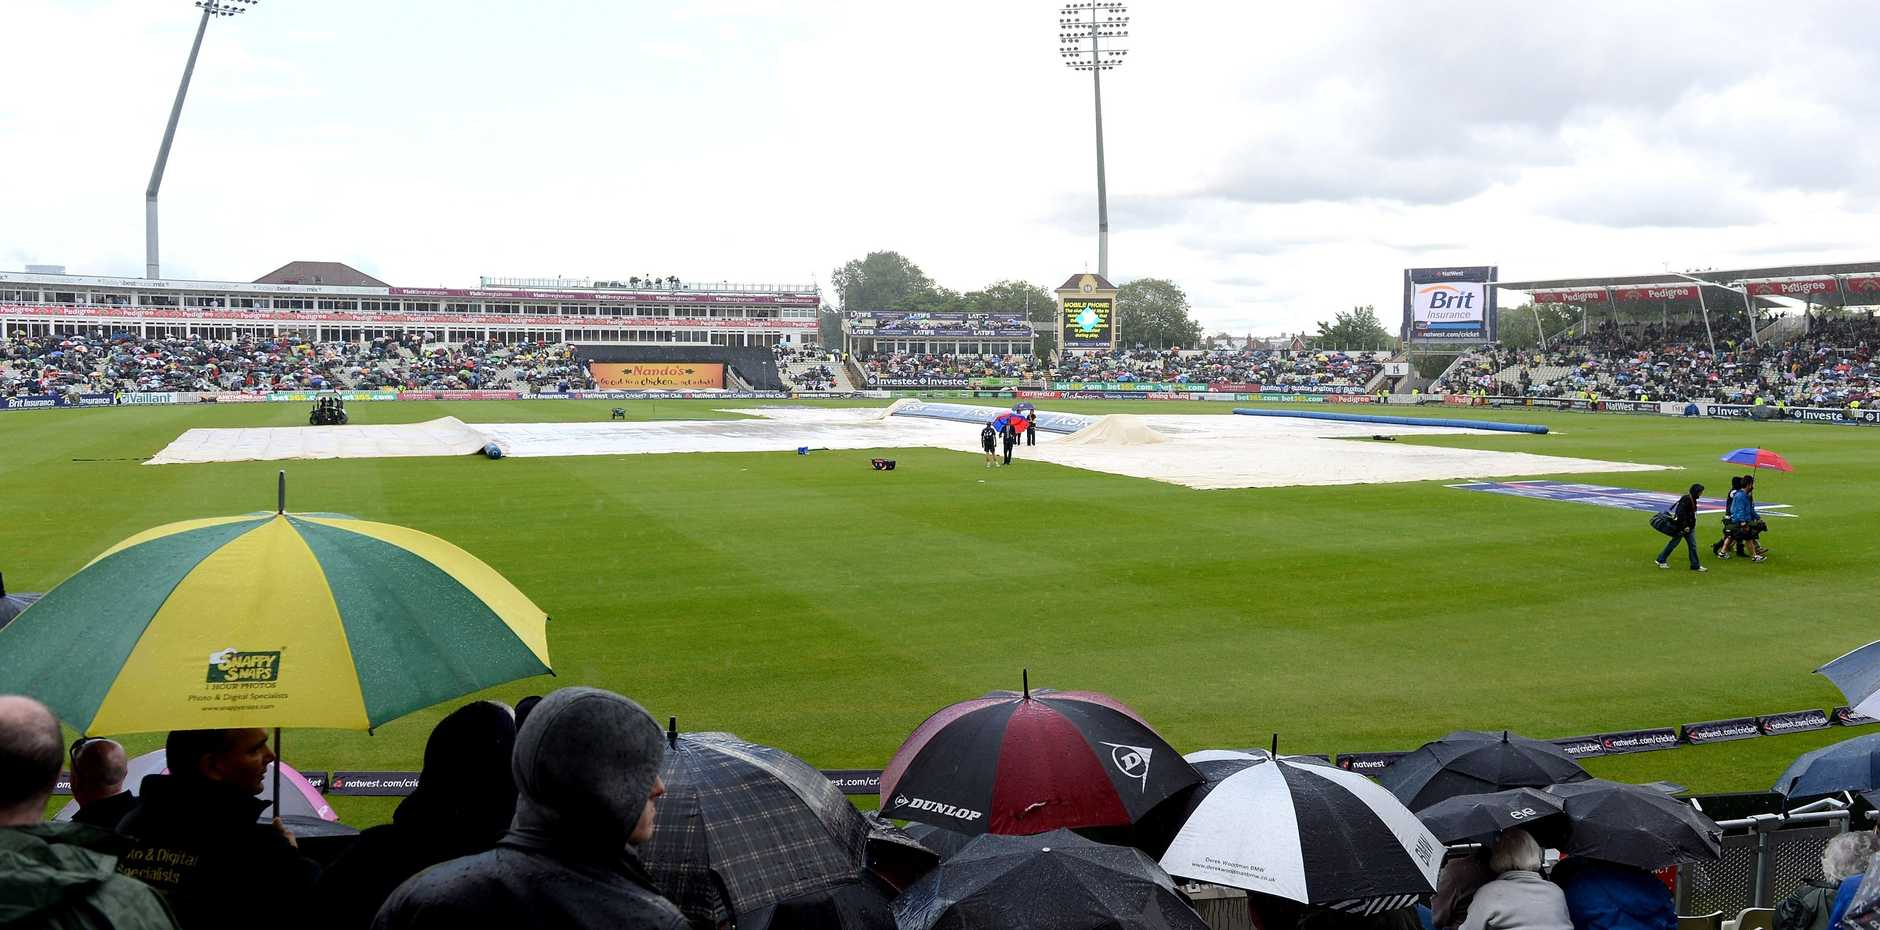 Rain puts stop to the 3rd Natwest One Day International match between England and Australia at Edgbaston on July 4.